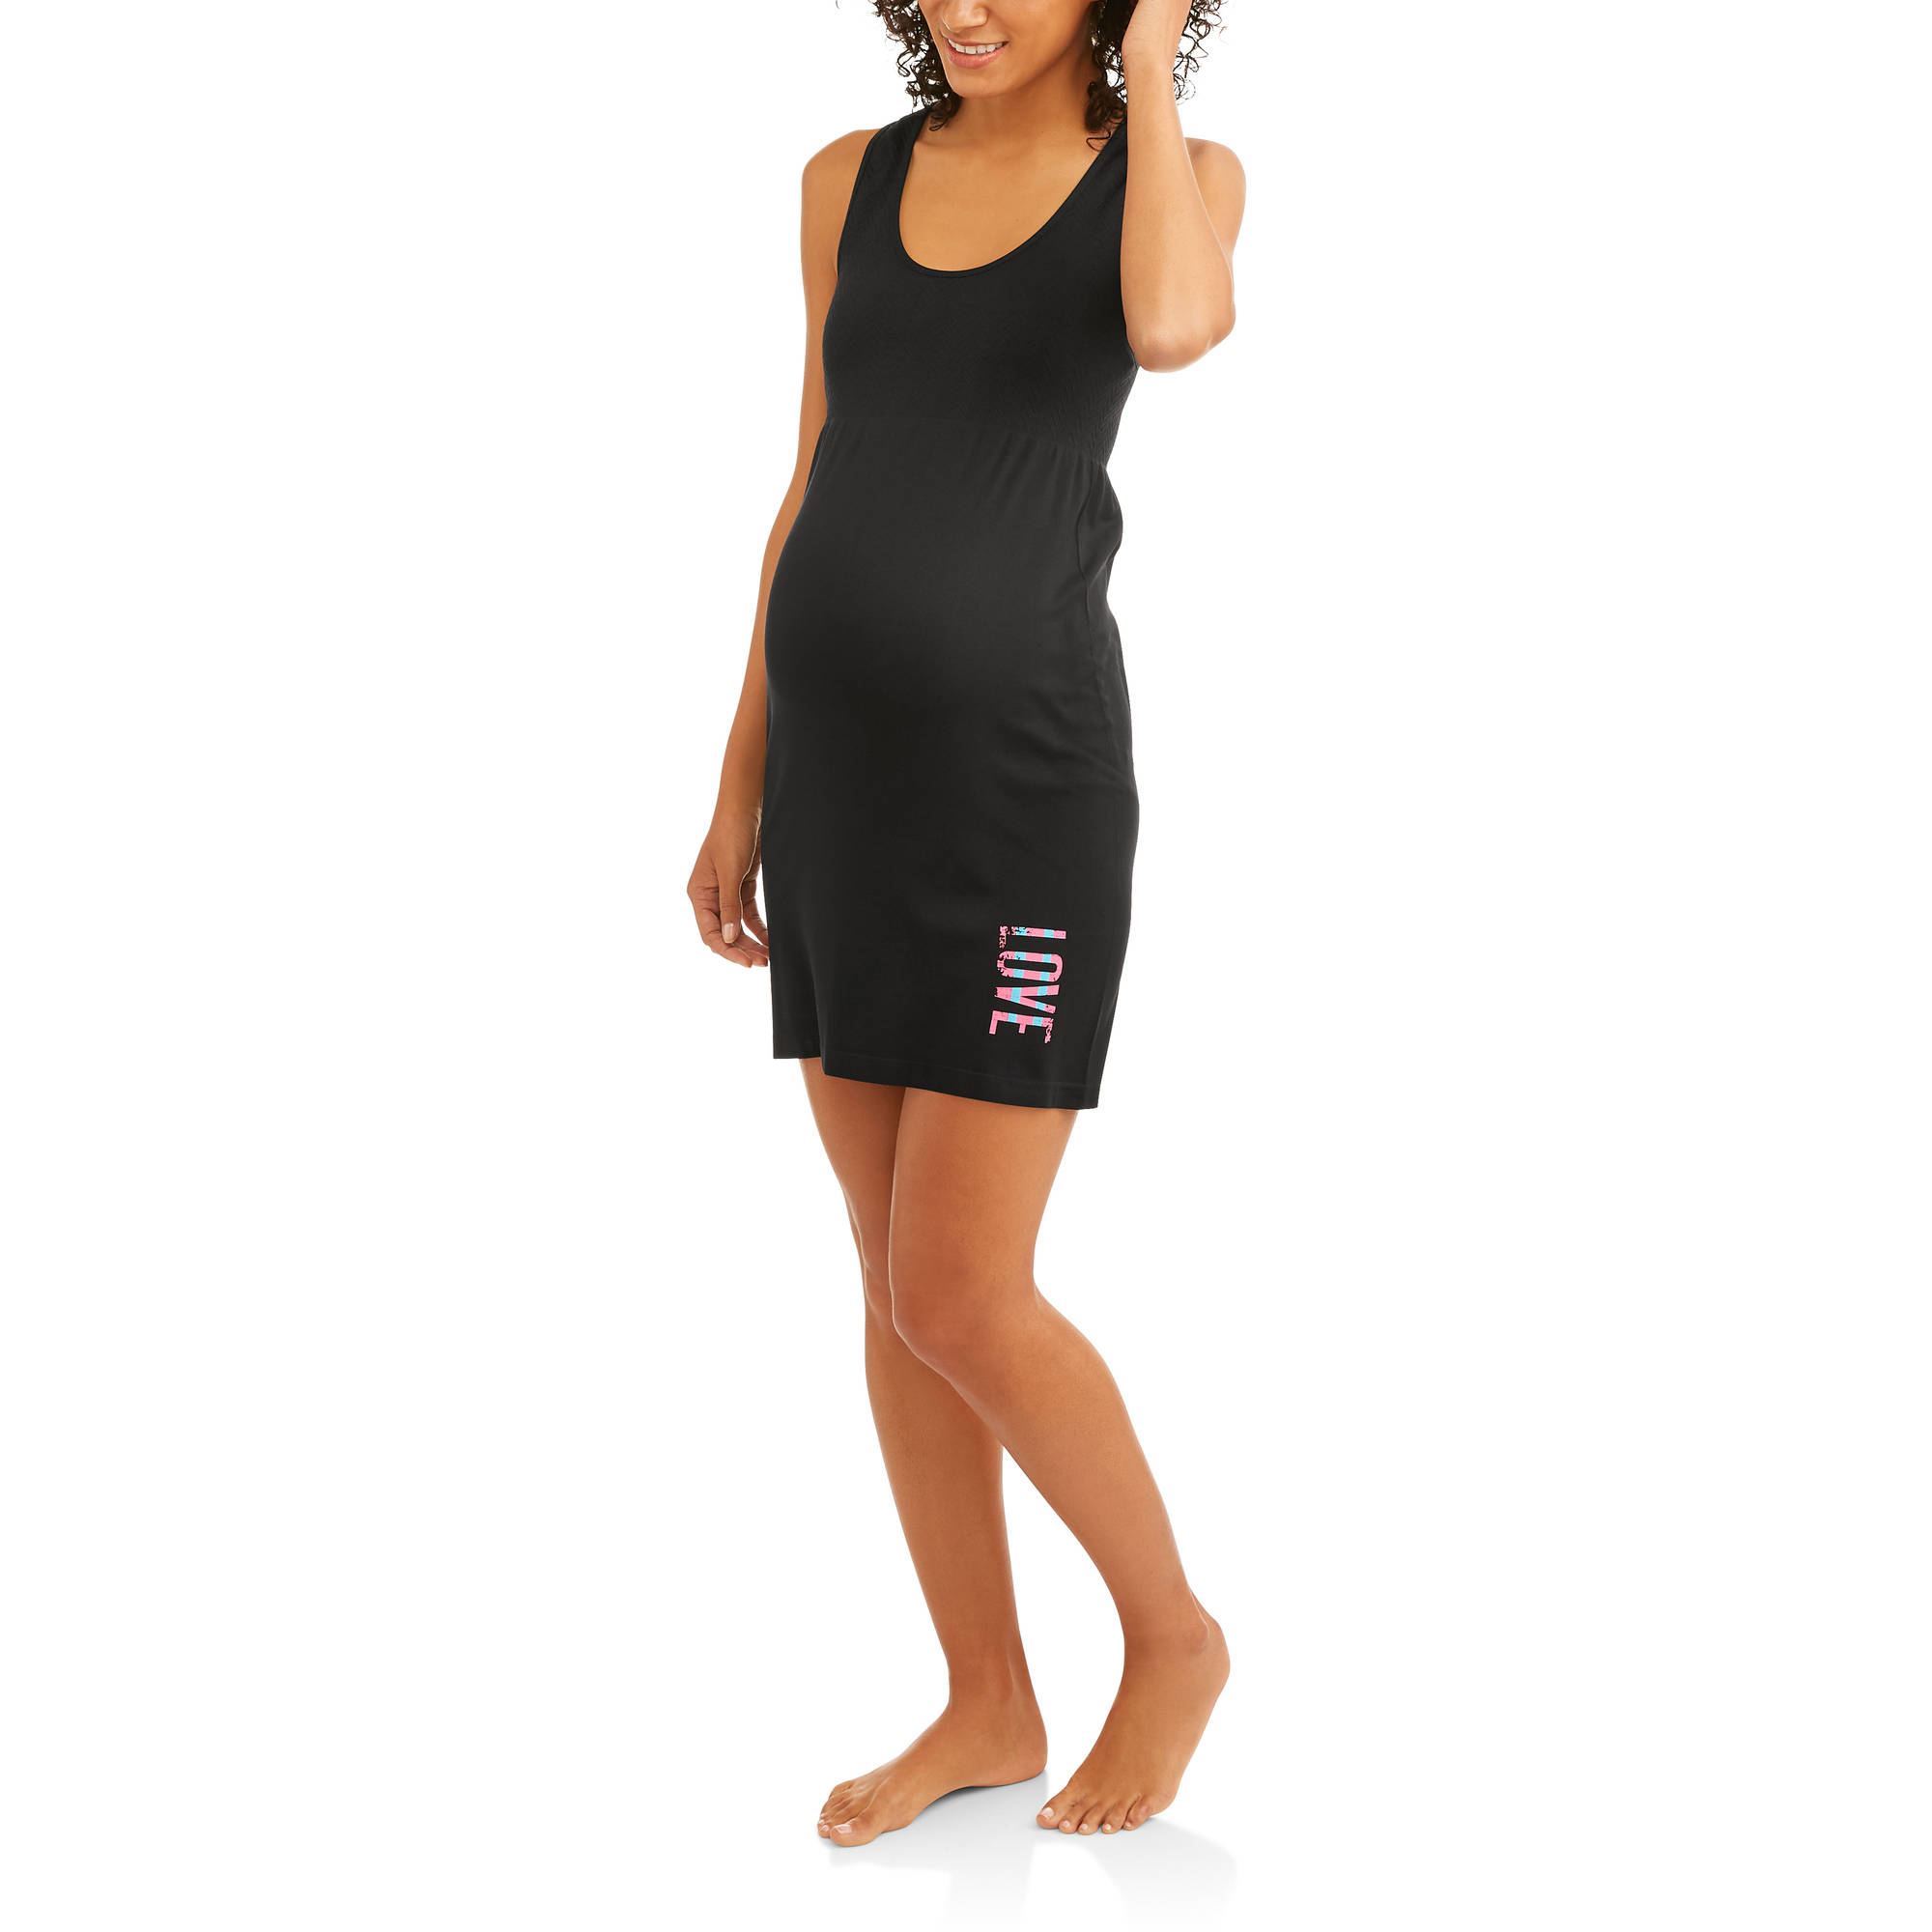 Labor Of Love Seamless Racer Back Chemise With Love Graphic-- Available In Plus Size